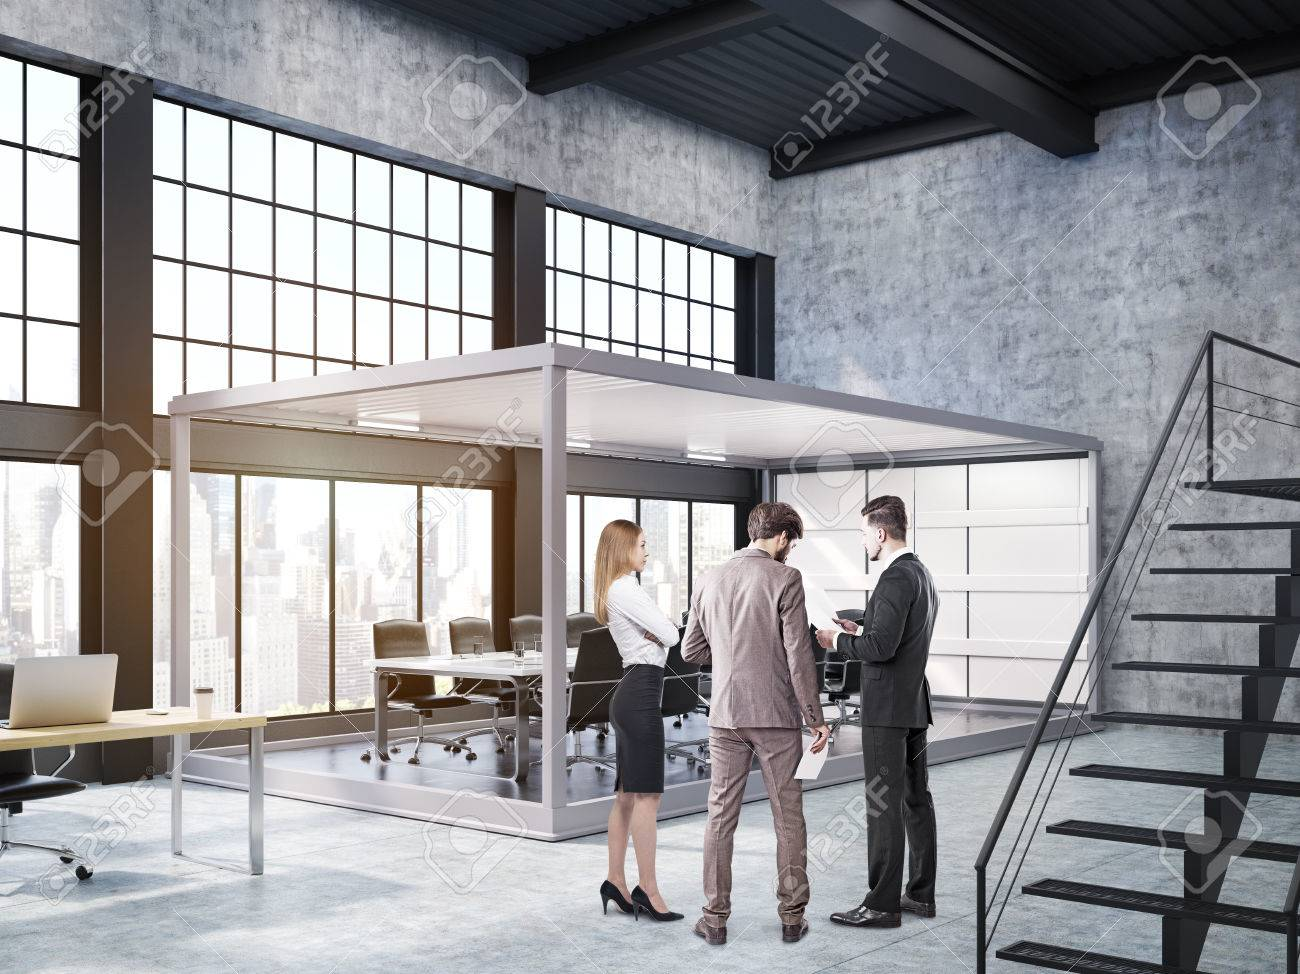 People Are Standing In Open Office With Stairs And Aquarium Board ...